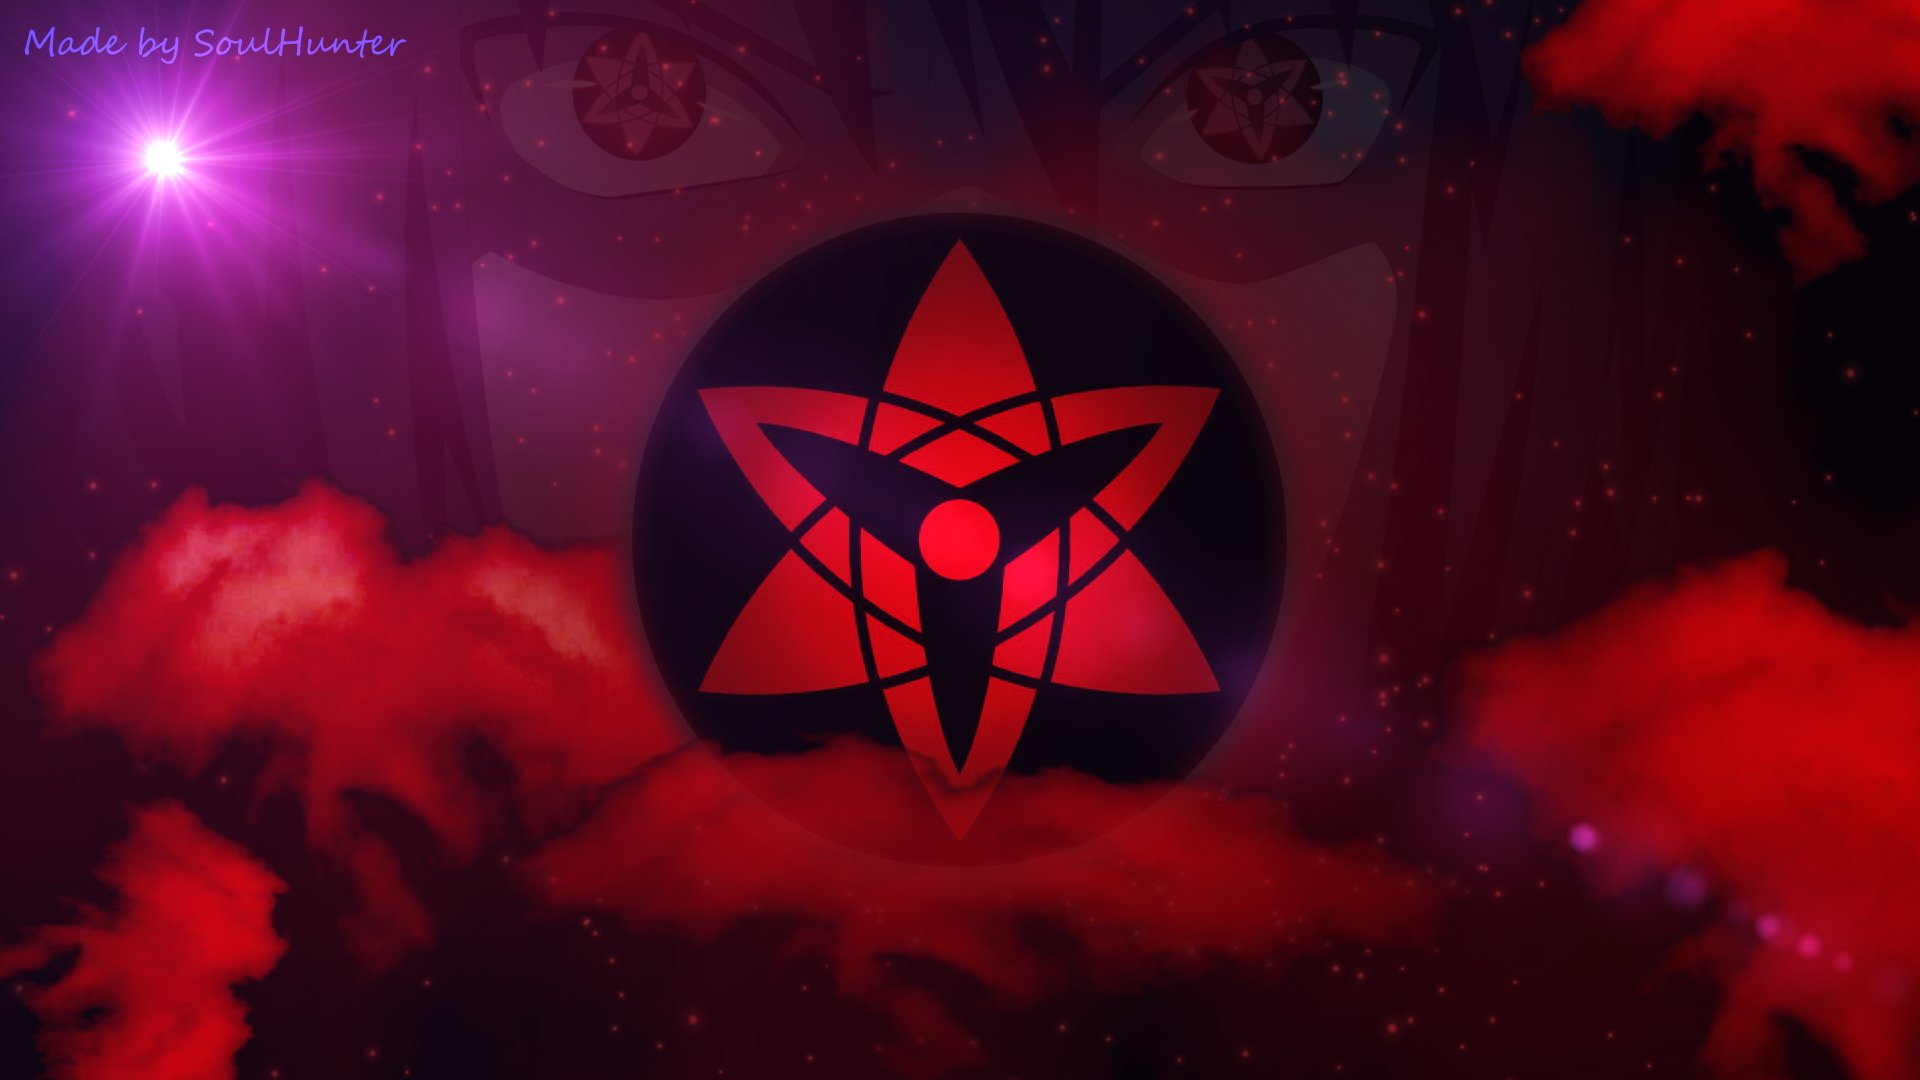 48 Sharingan (Naruto) HD Wallpapers | Backgrounds - Wallpaper Abyss